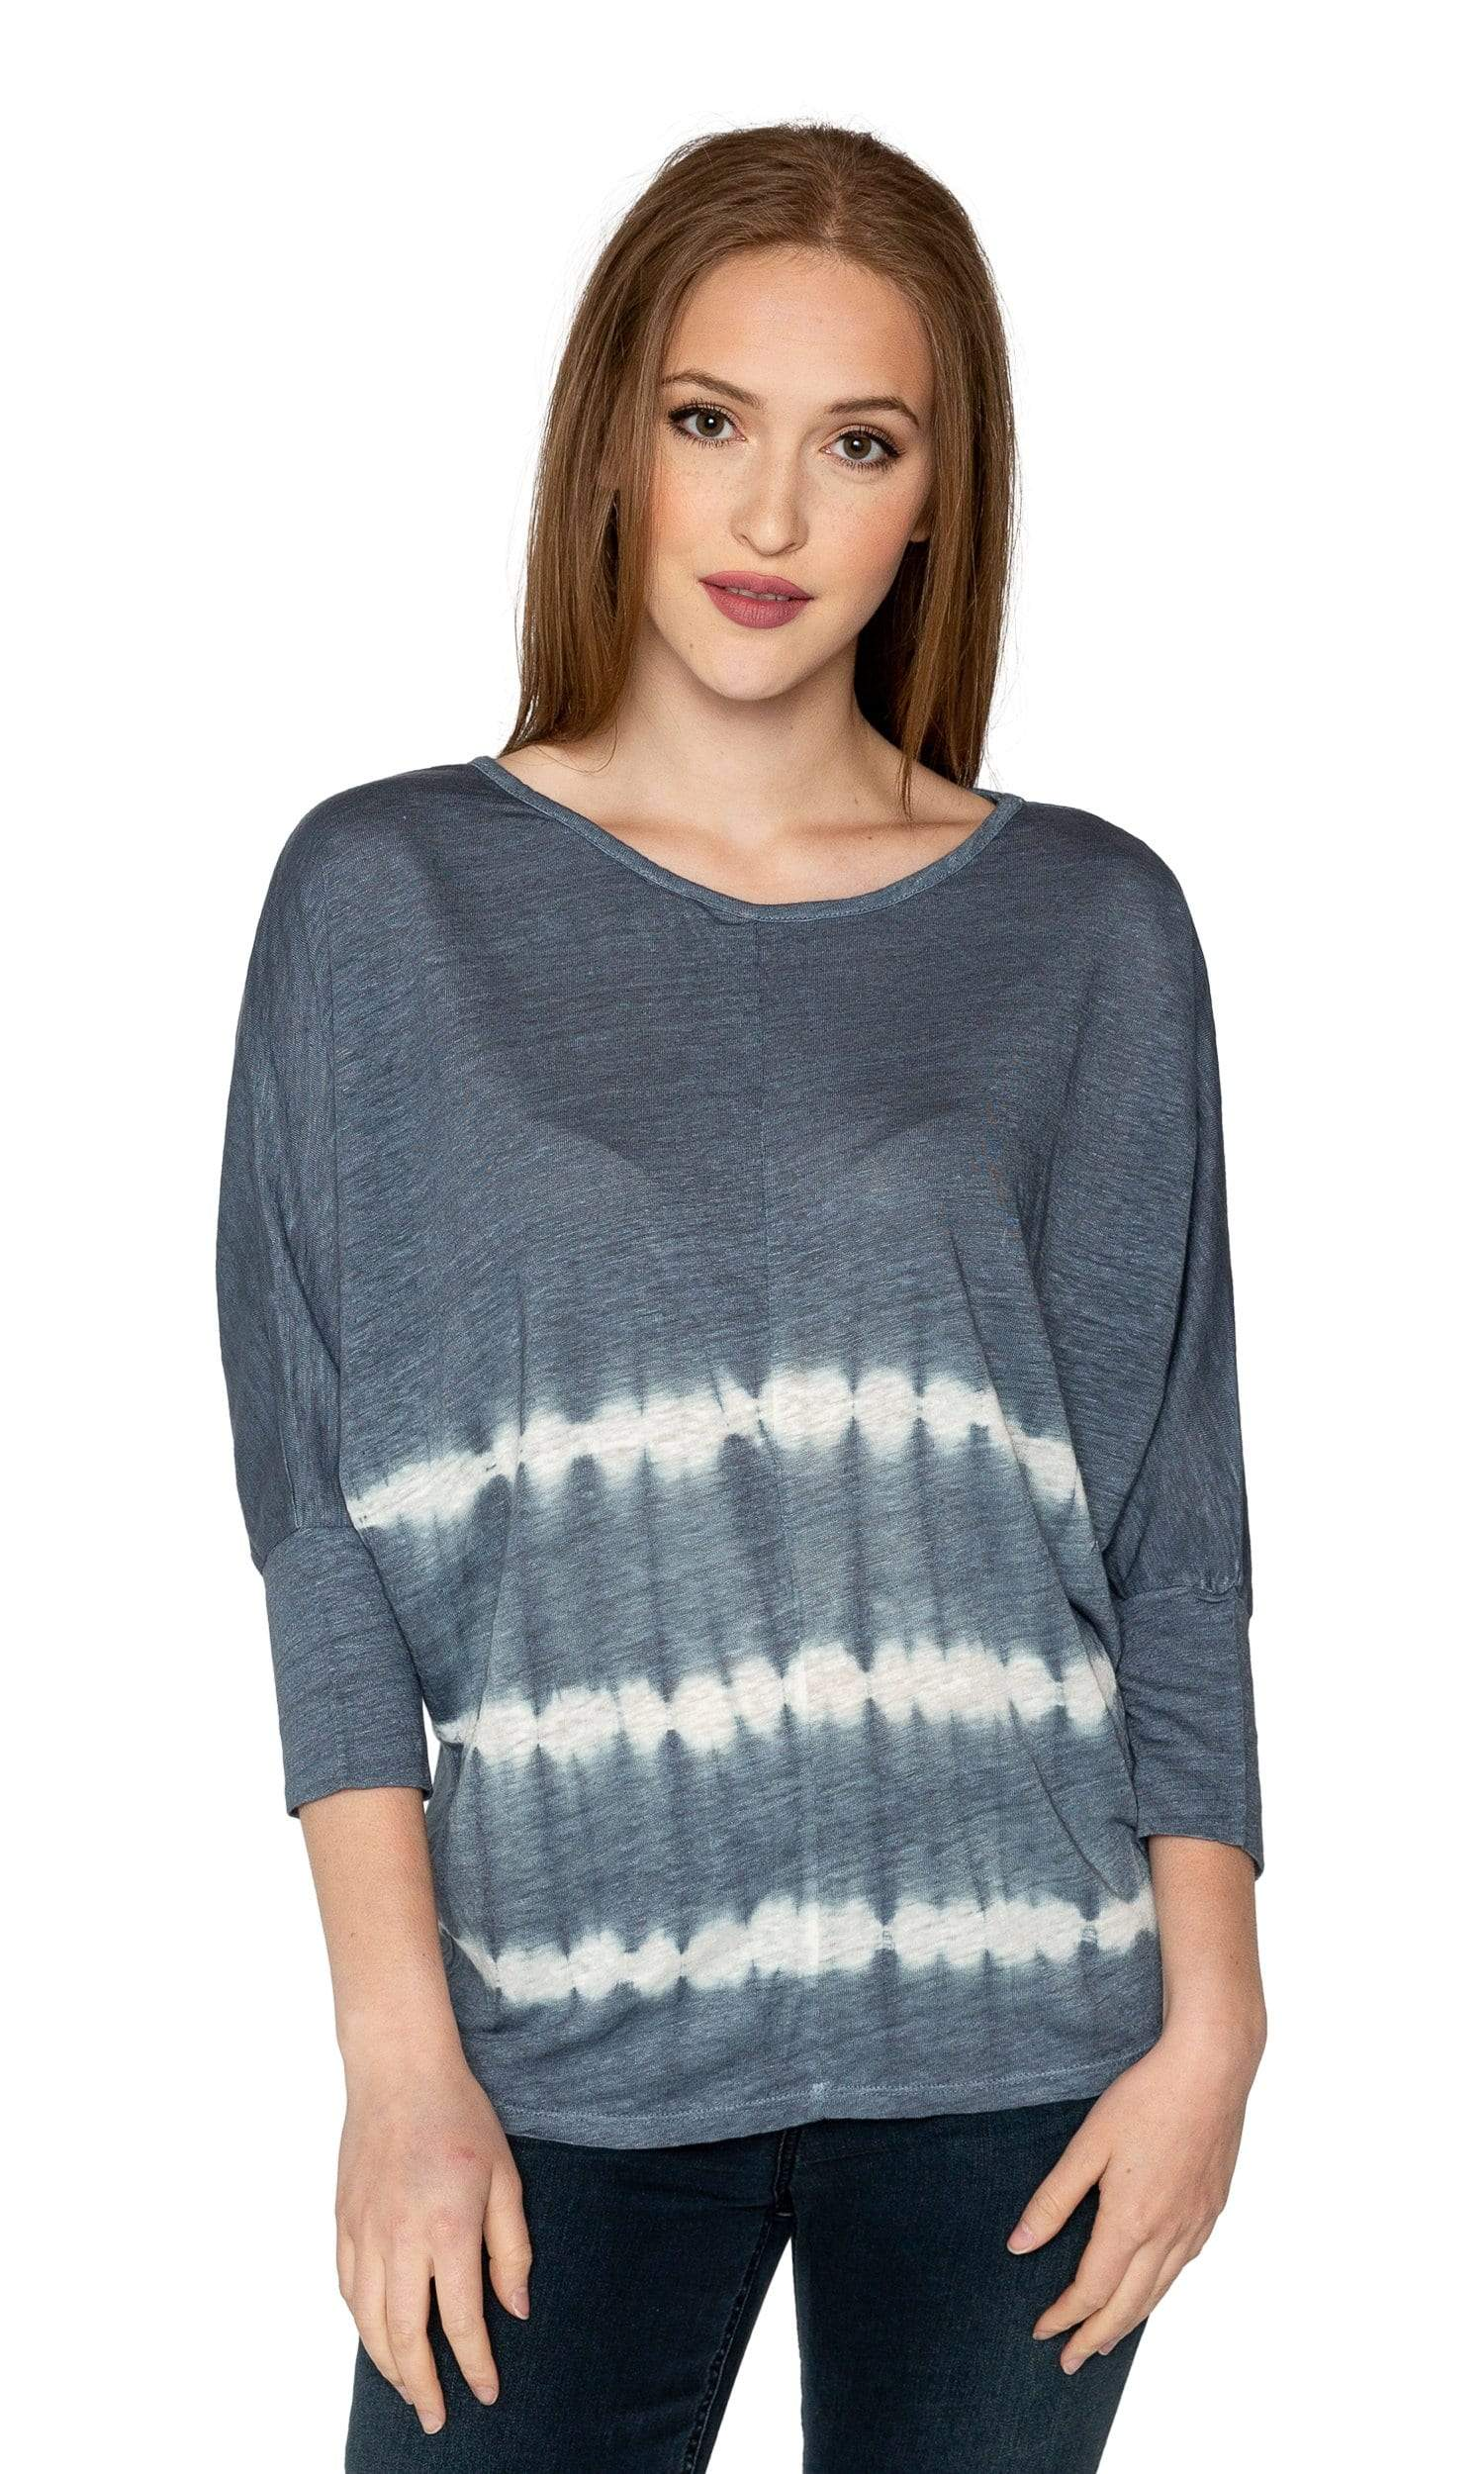 Velvet by Graham & Spencer Amber Tie Dye Dolman Sleeve Top